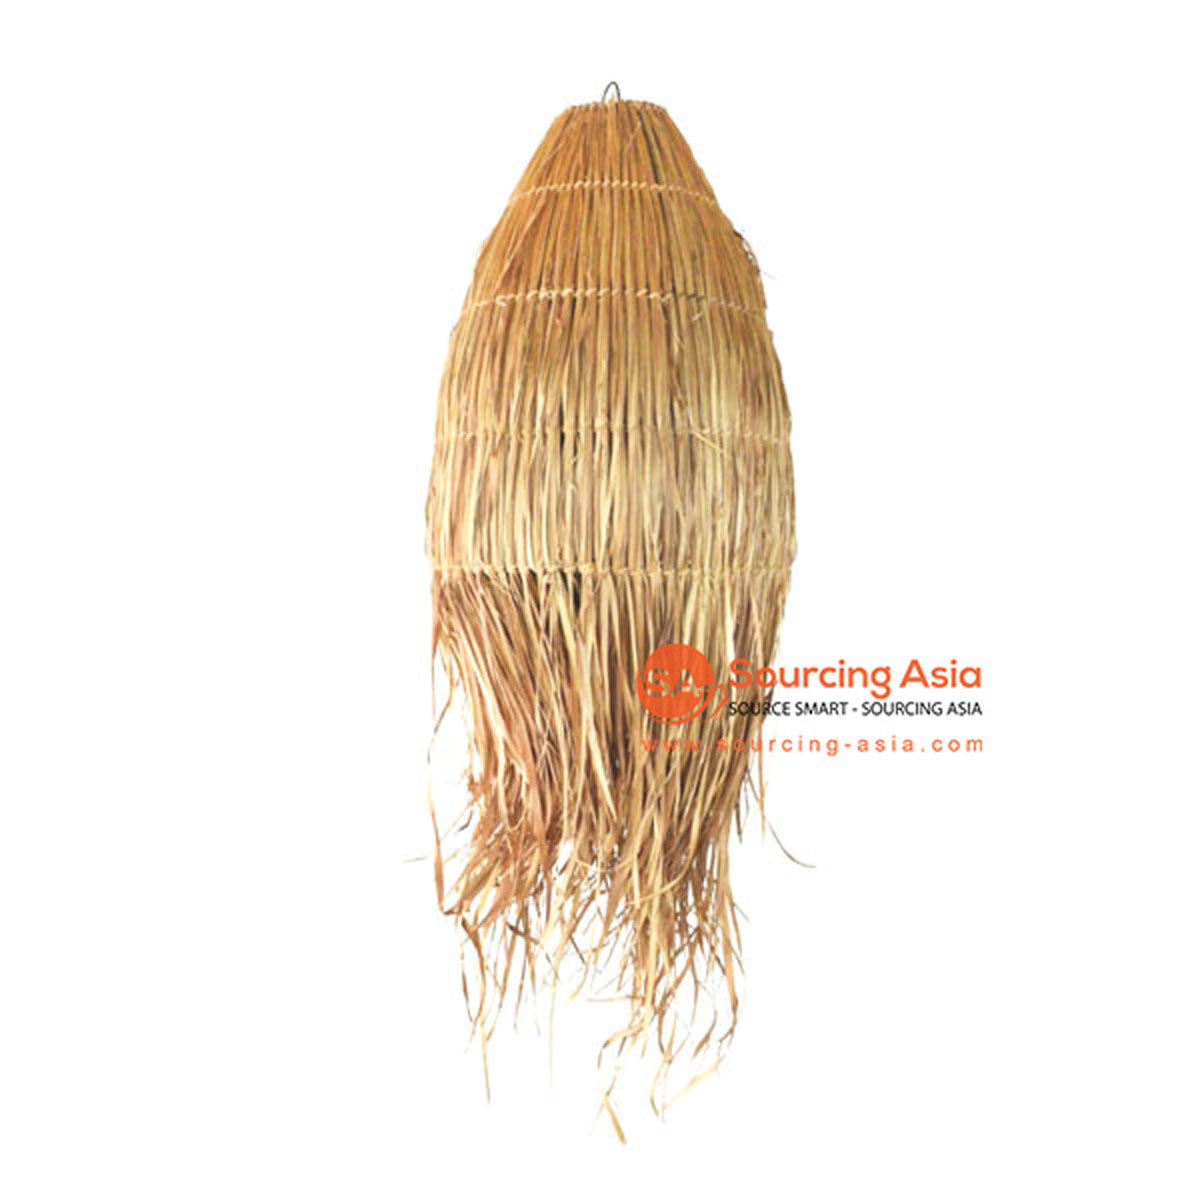 SHL063-8 NATURAL LEAF PENDANT LAMP WITH FRINGE